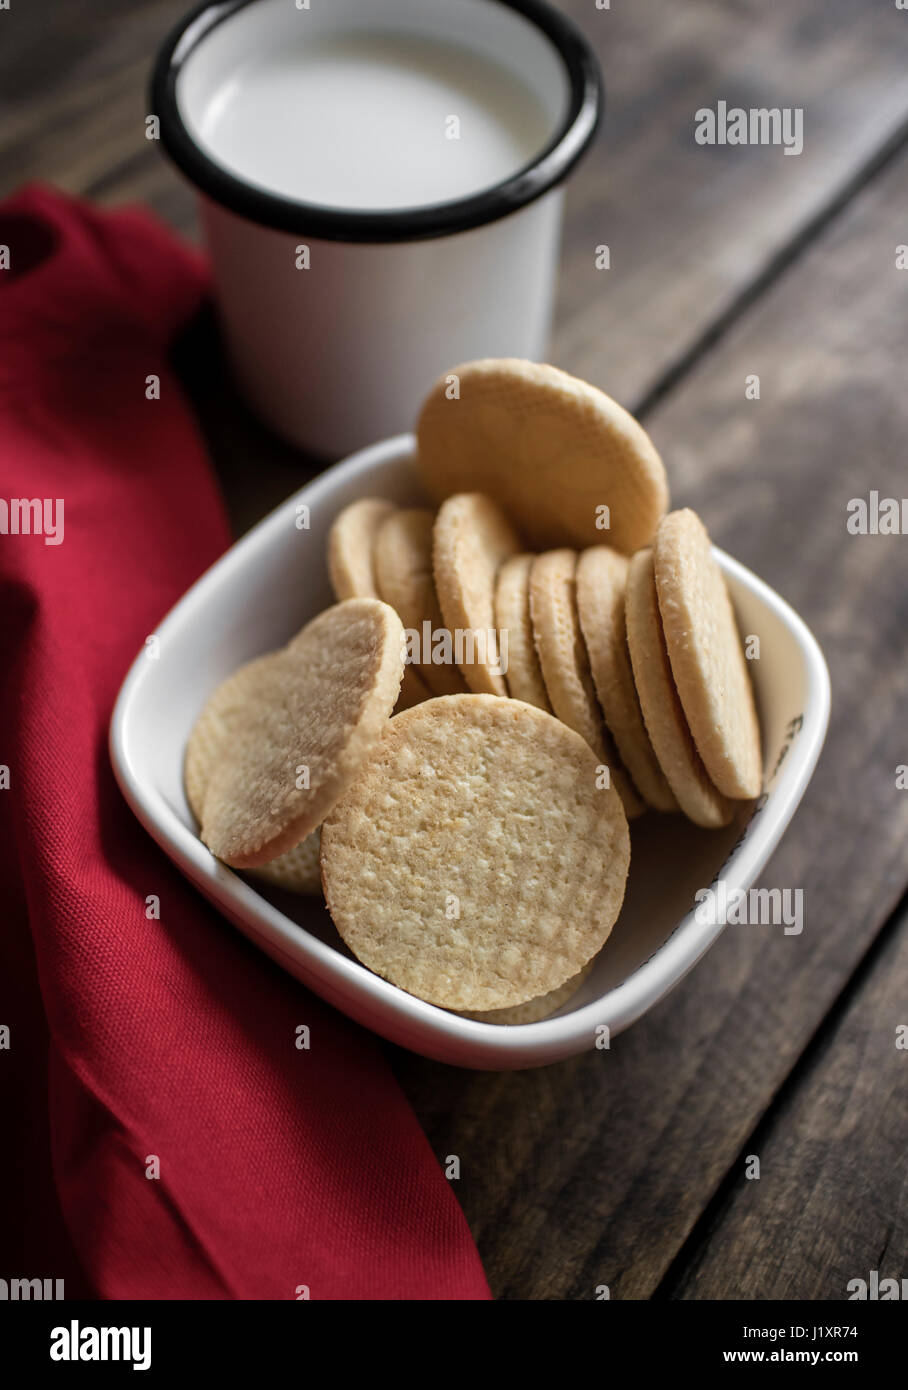 Organic, gluten free sugar cookies with milk on the  table - Stock Image